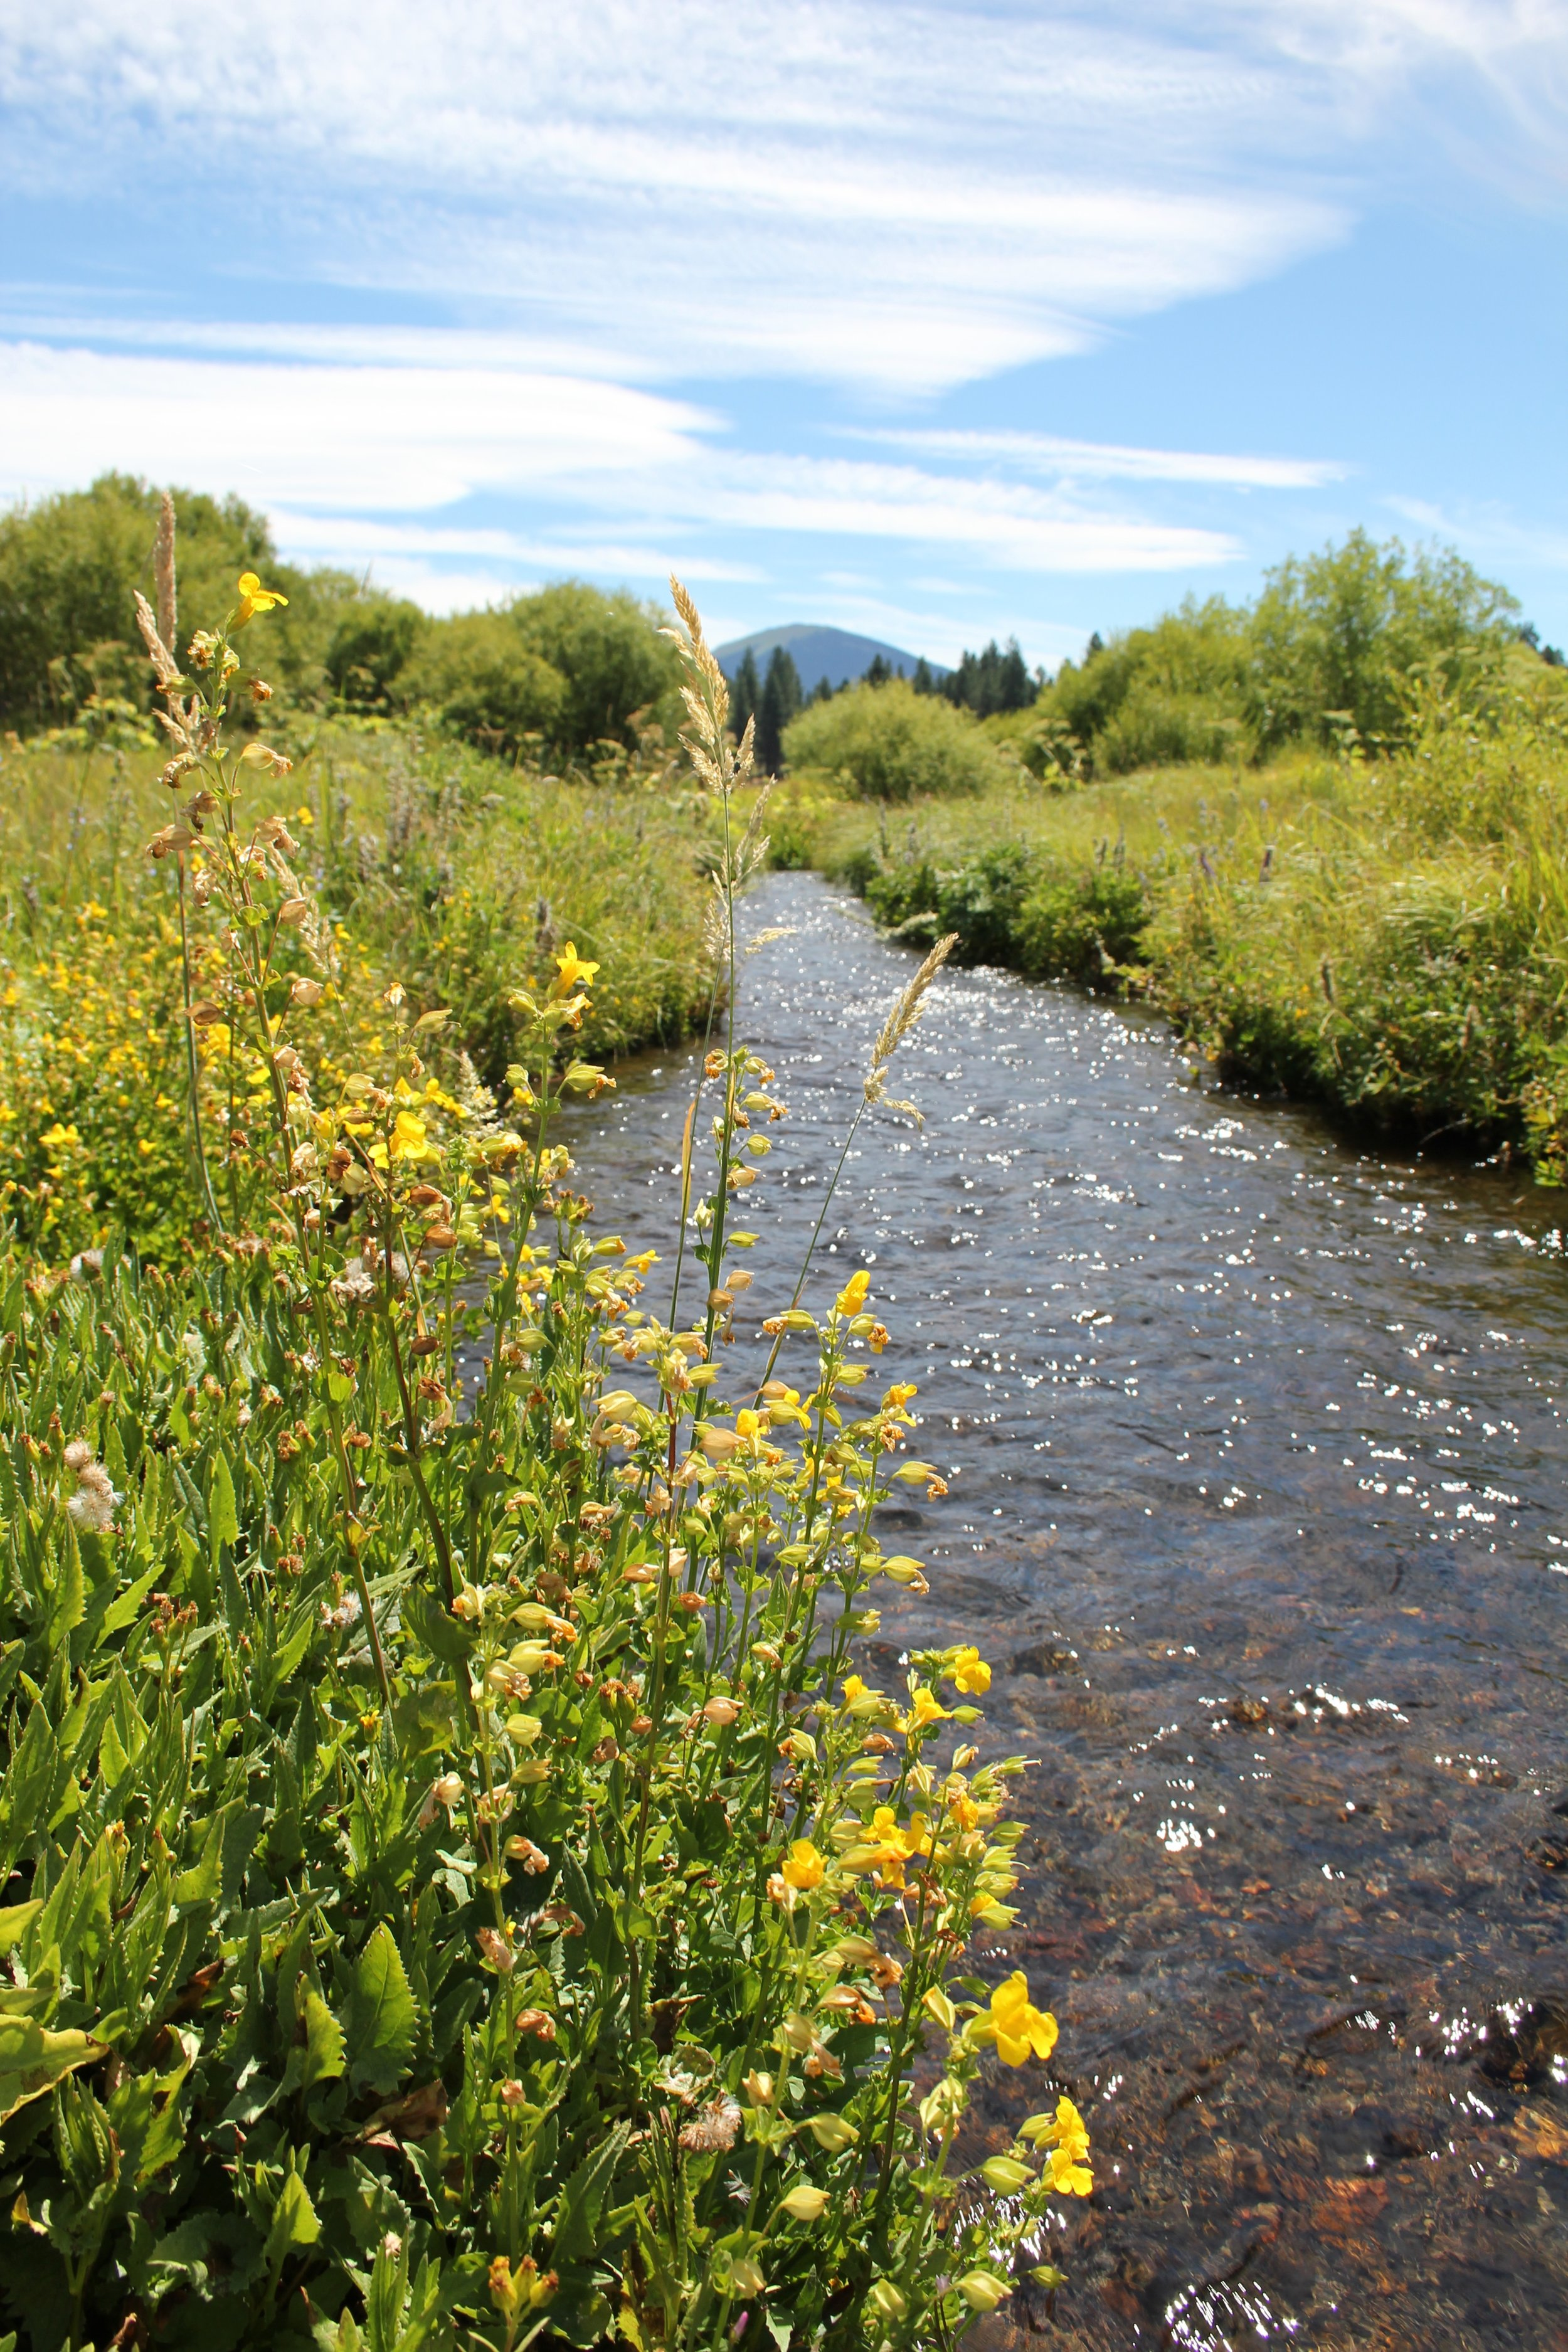 Fully formed streams pop up in the meadow and flow into the Metolius. - Cold, clear and delicious: this water keeps our pastures green.